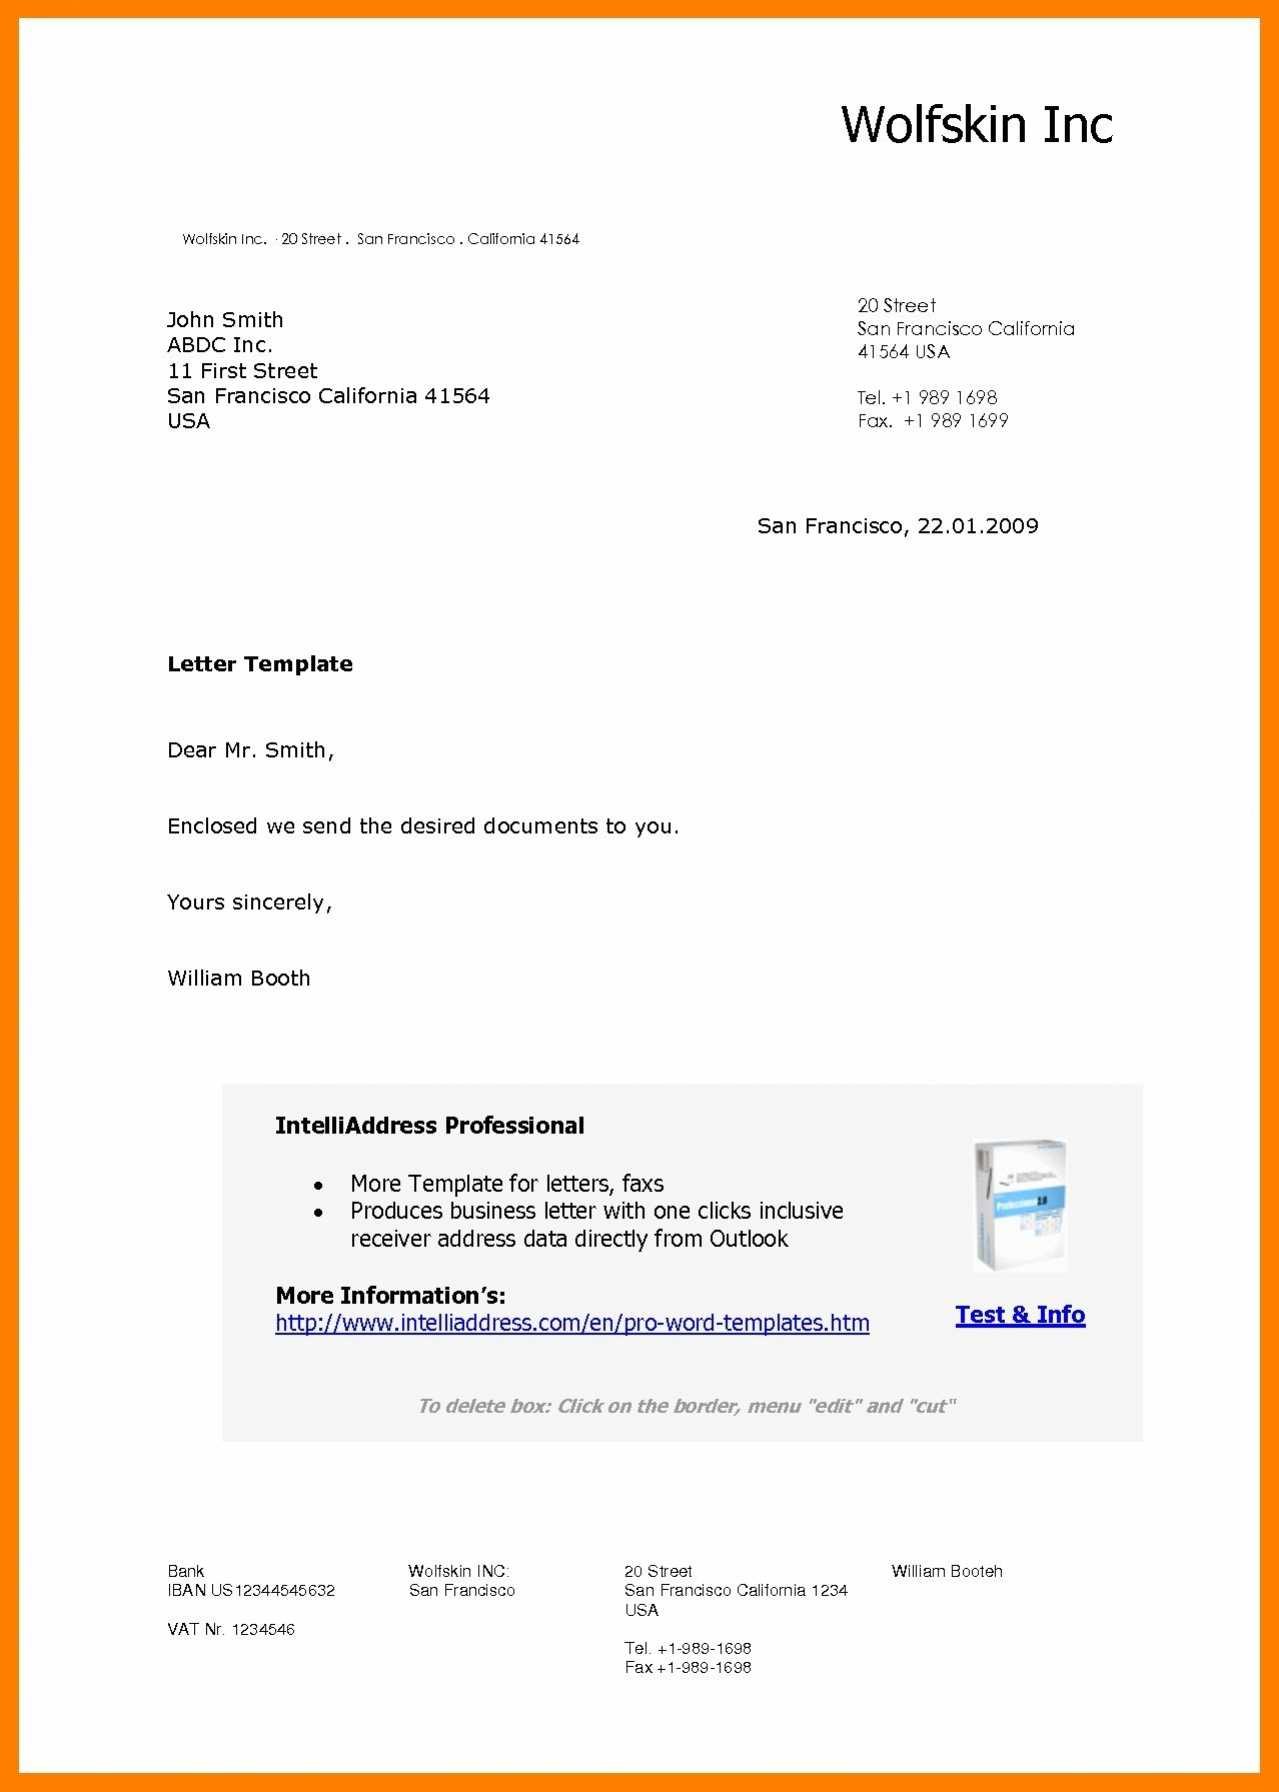 Free Letter From Santa Template Word - Beautiful Free Cover Letter Template Word